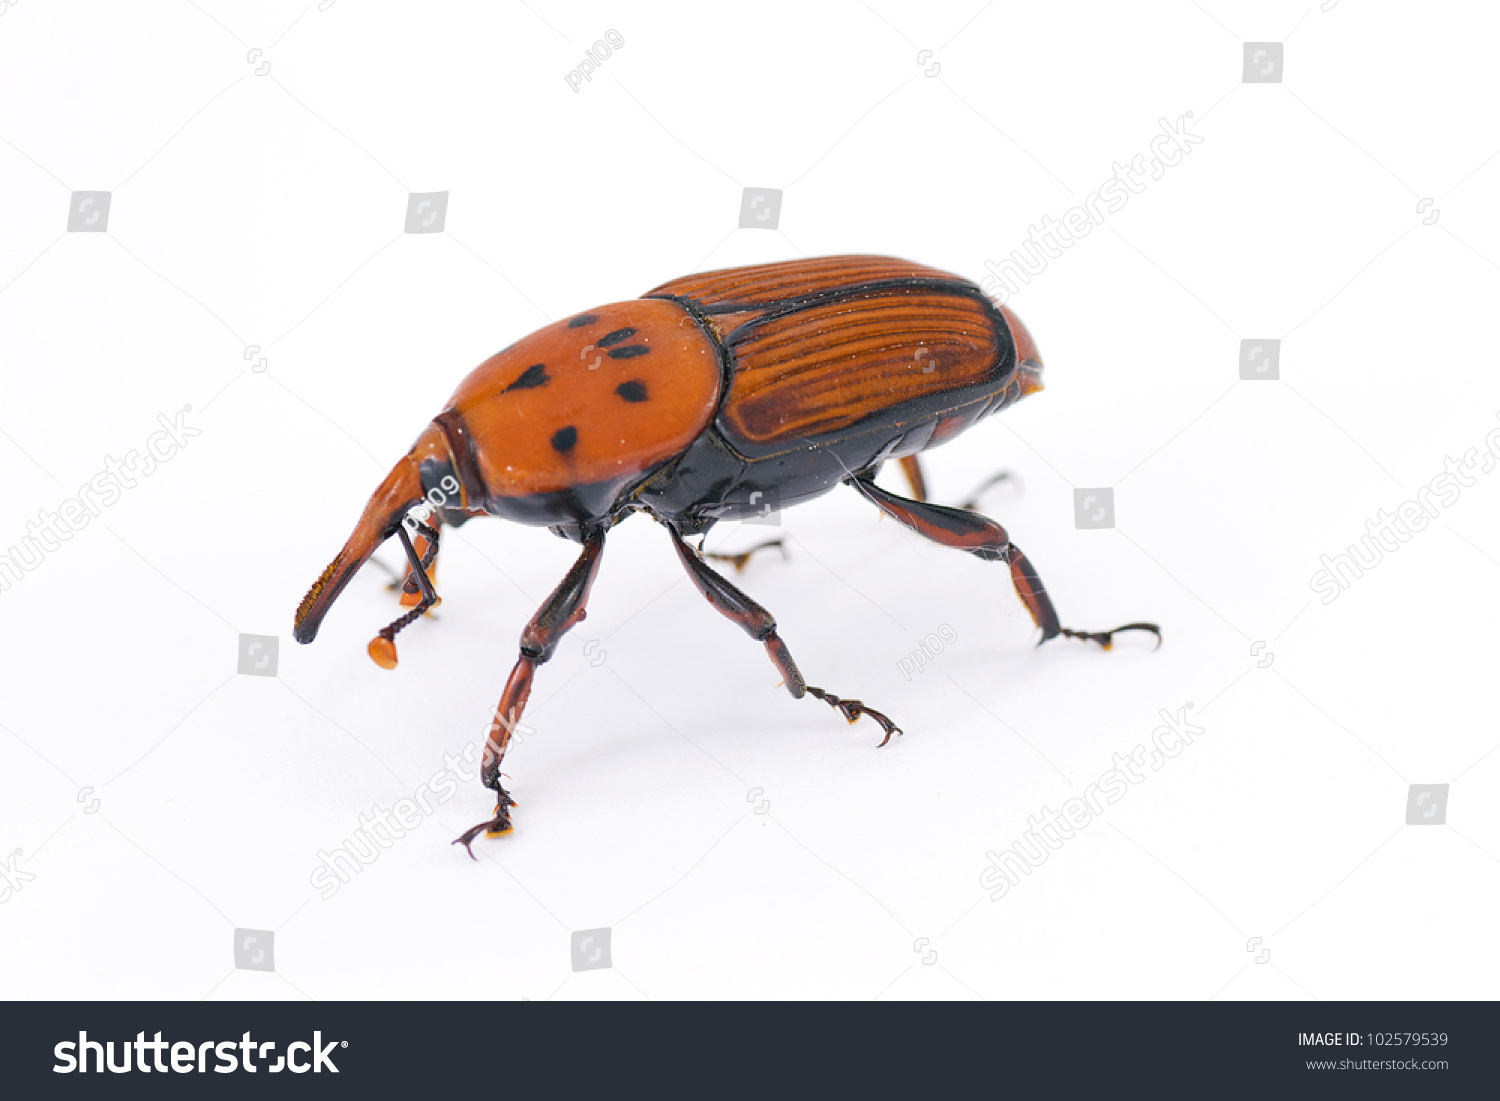 Red weevil insect Stock Photo 102579539 - Avopix com